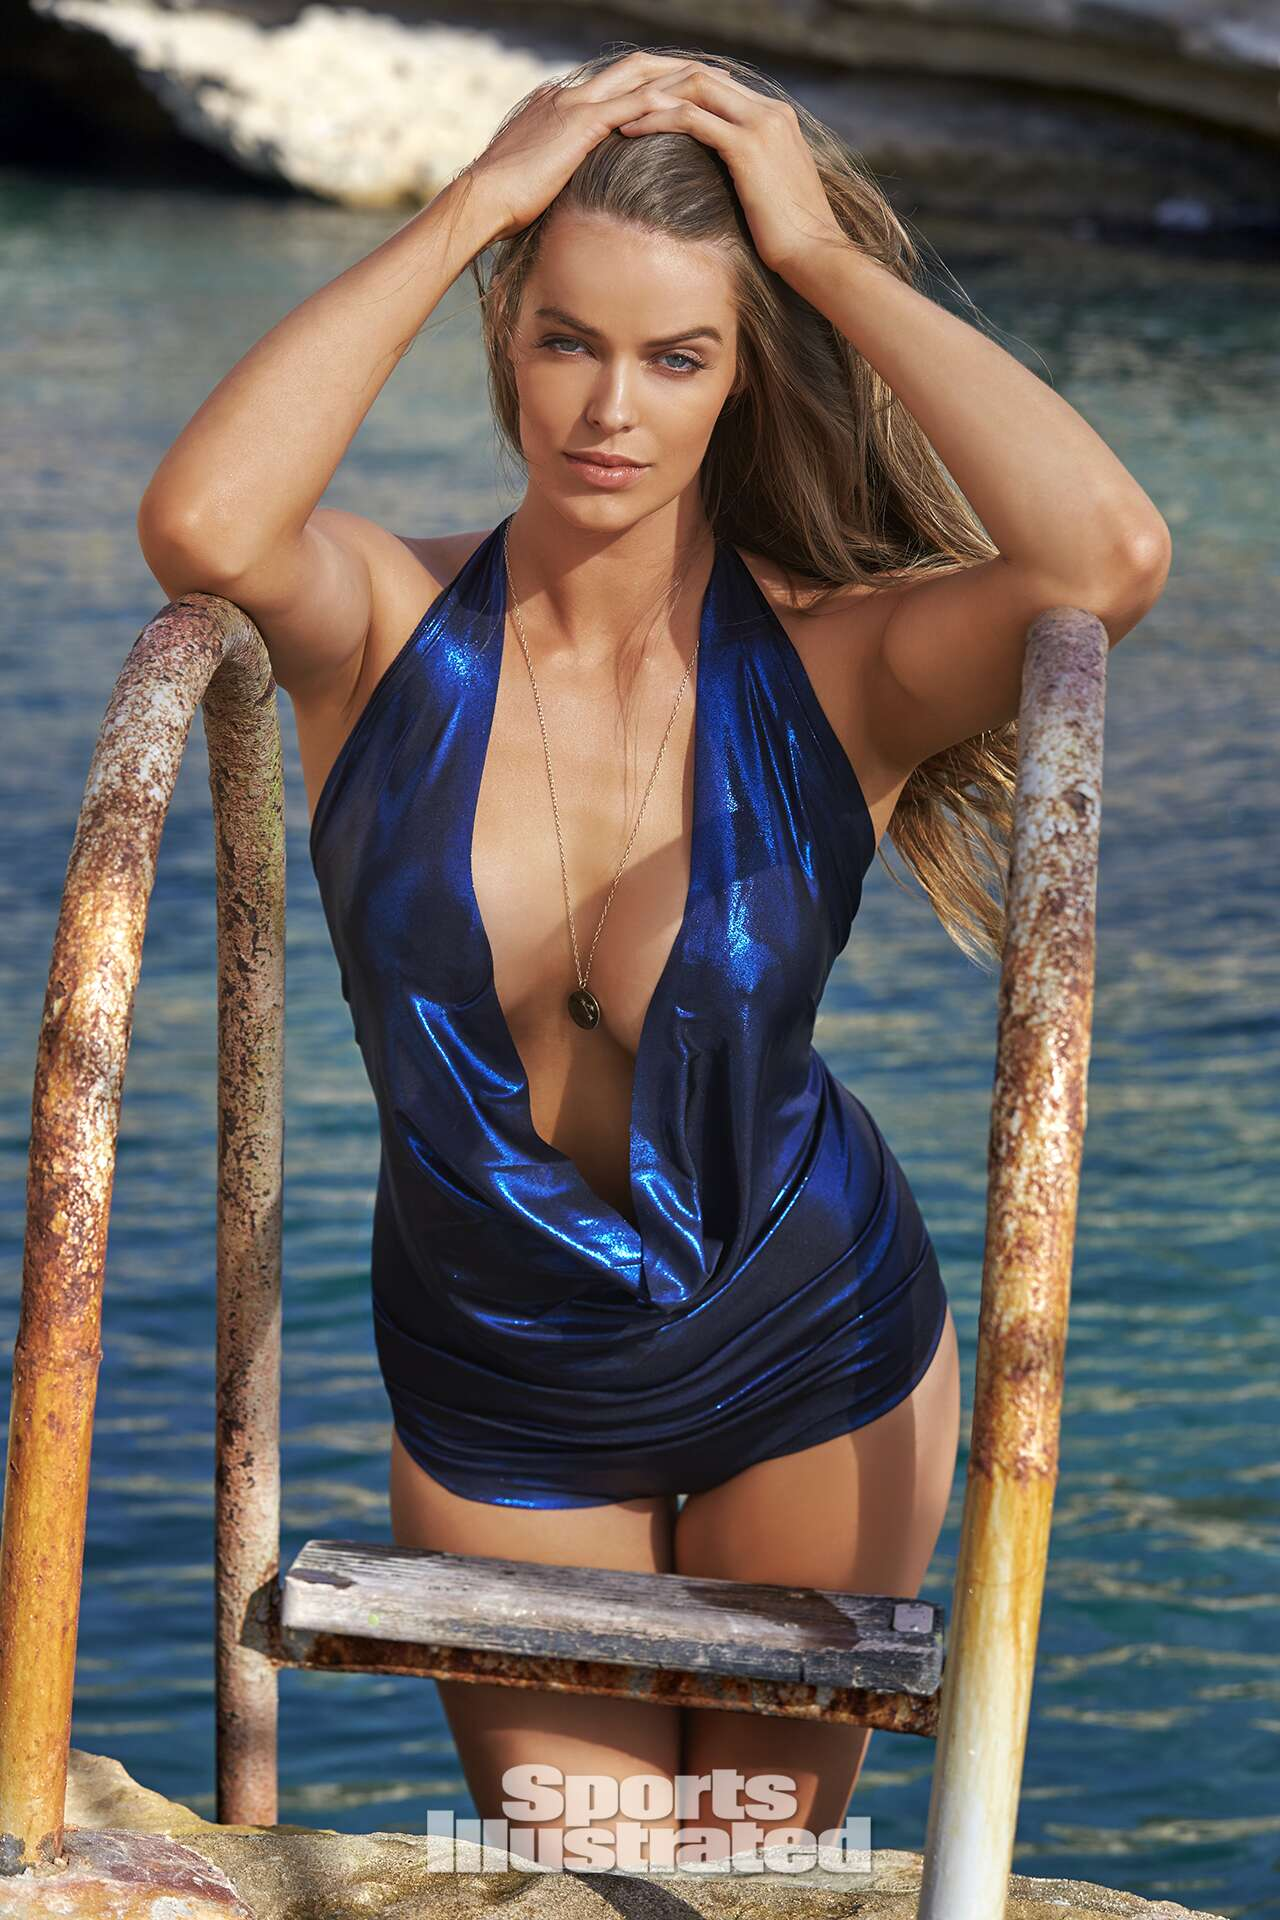 Robyn Lawley was photographed by Ben Watts in Malta. Swimsuit by Hayhay Couture By Hayley Kaysing.